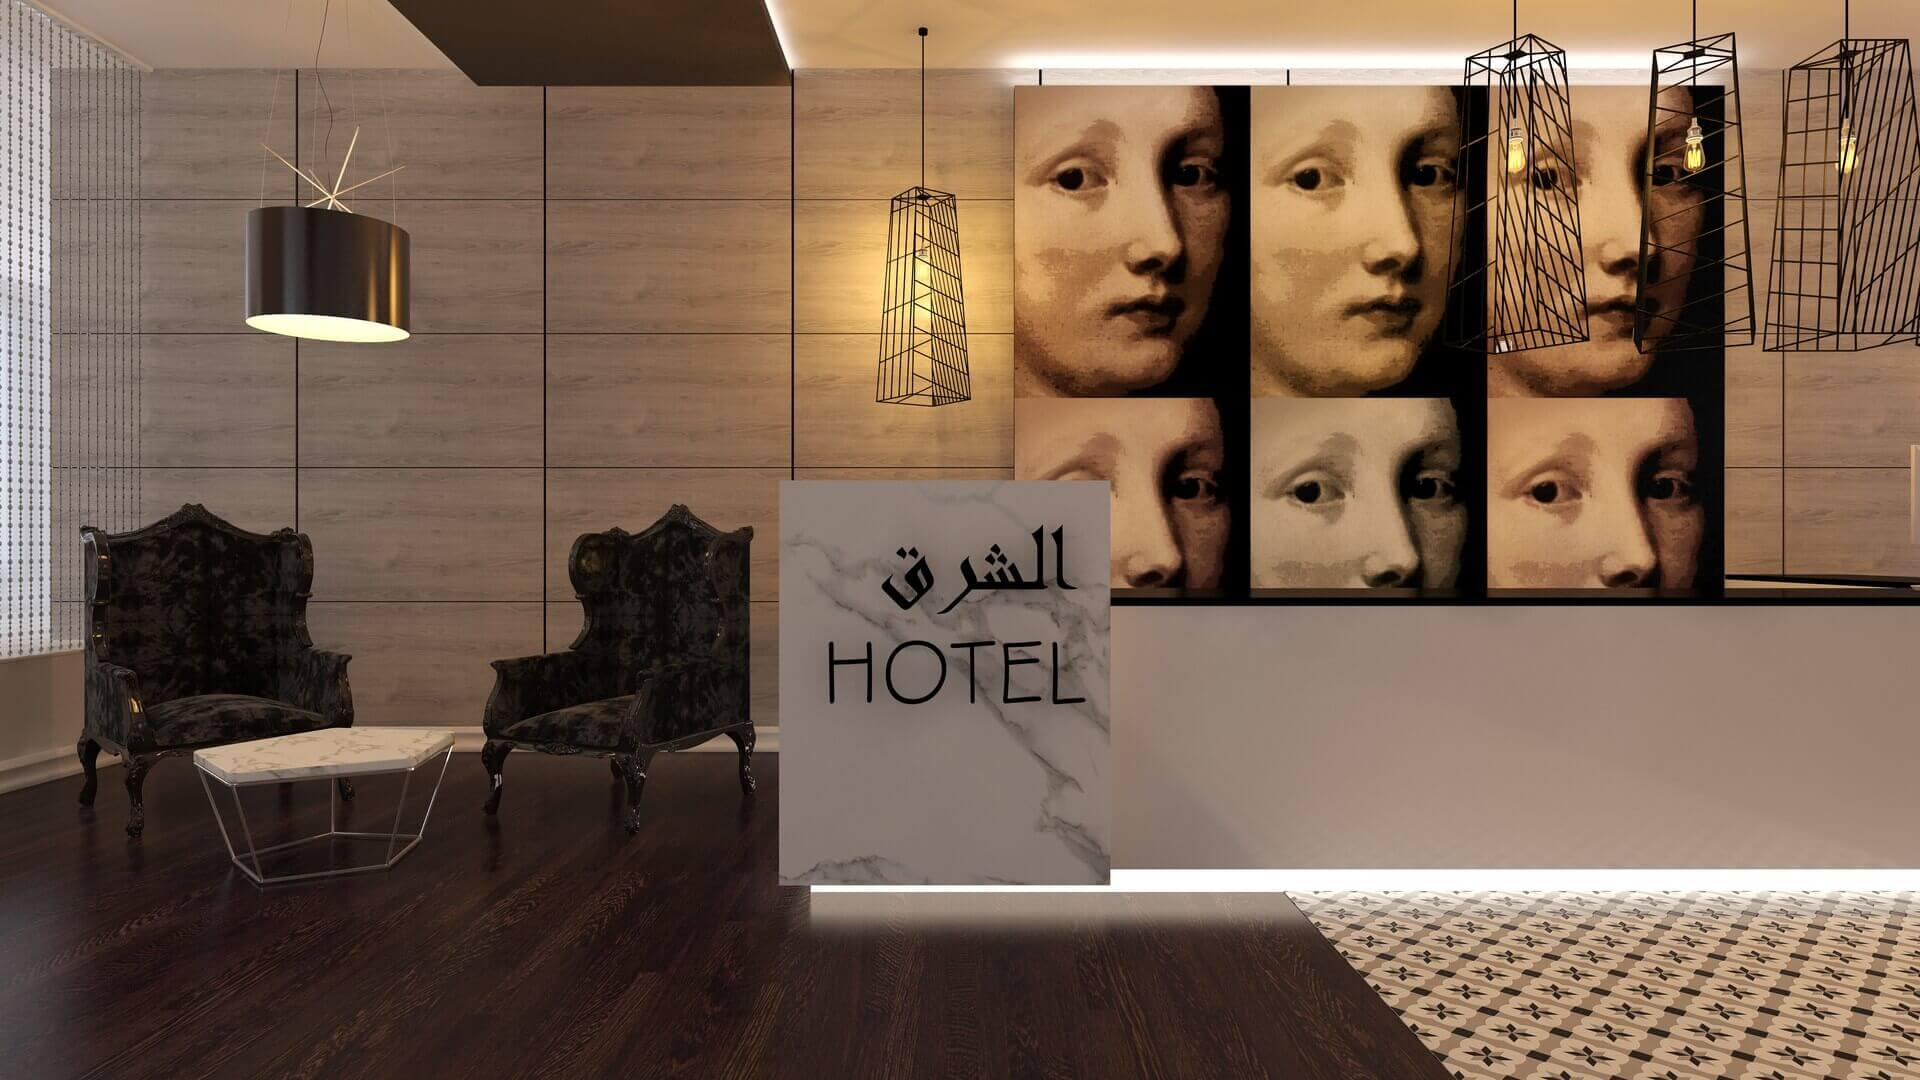 Hotel Architecture and Interior Design East Hotel, Tehran